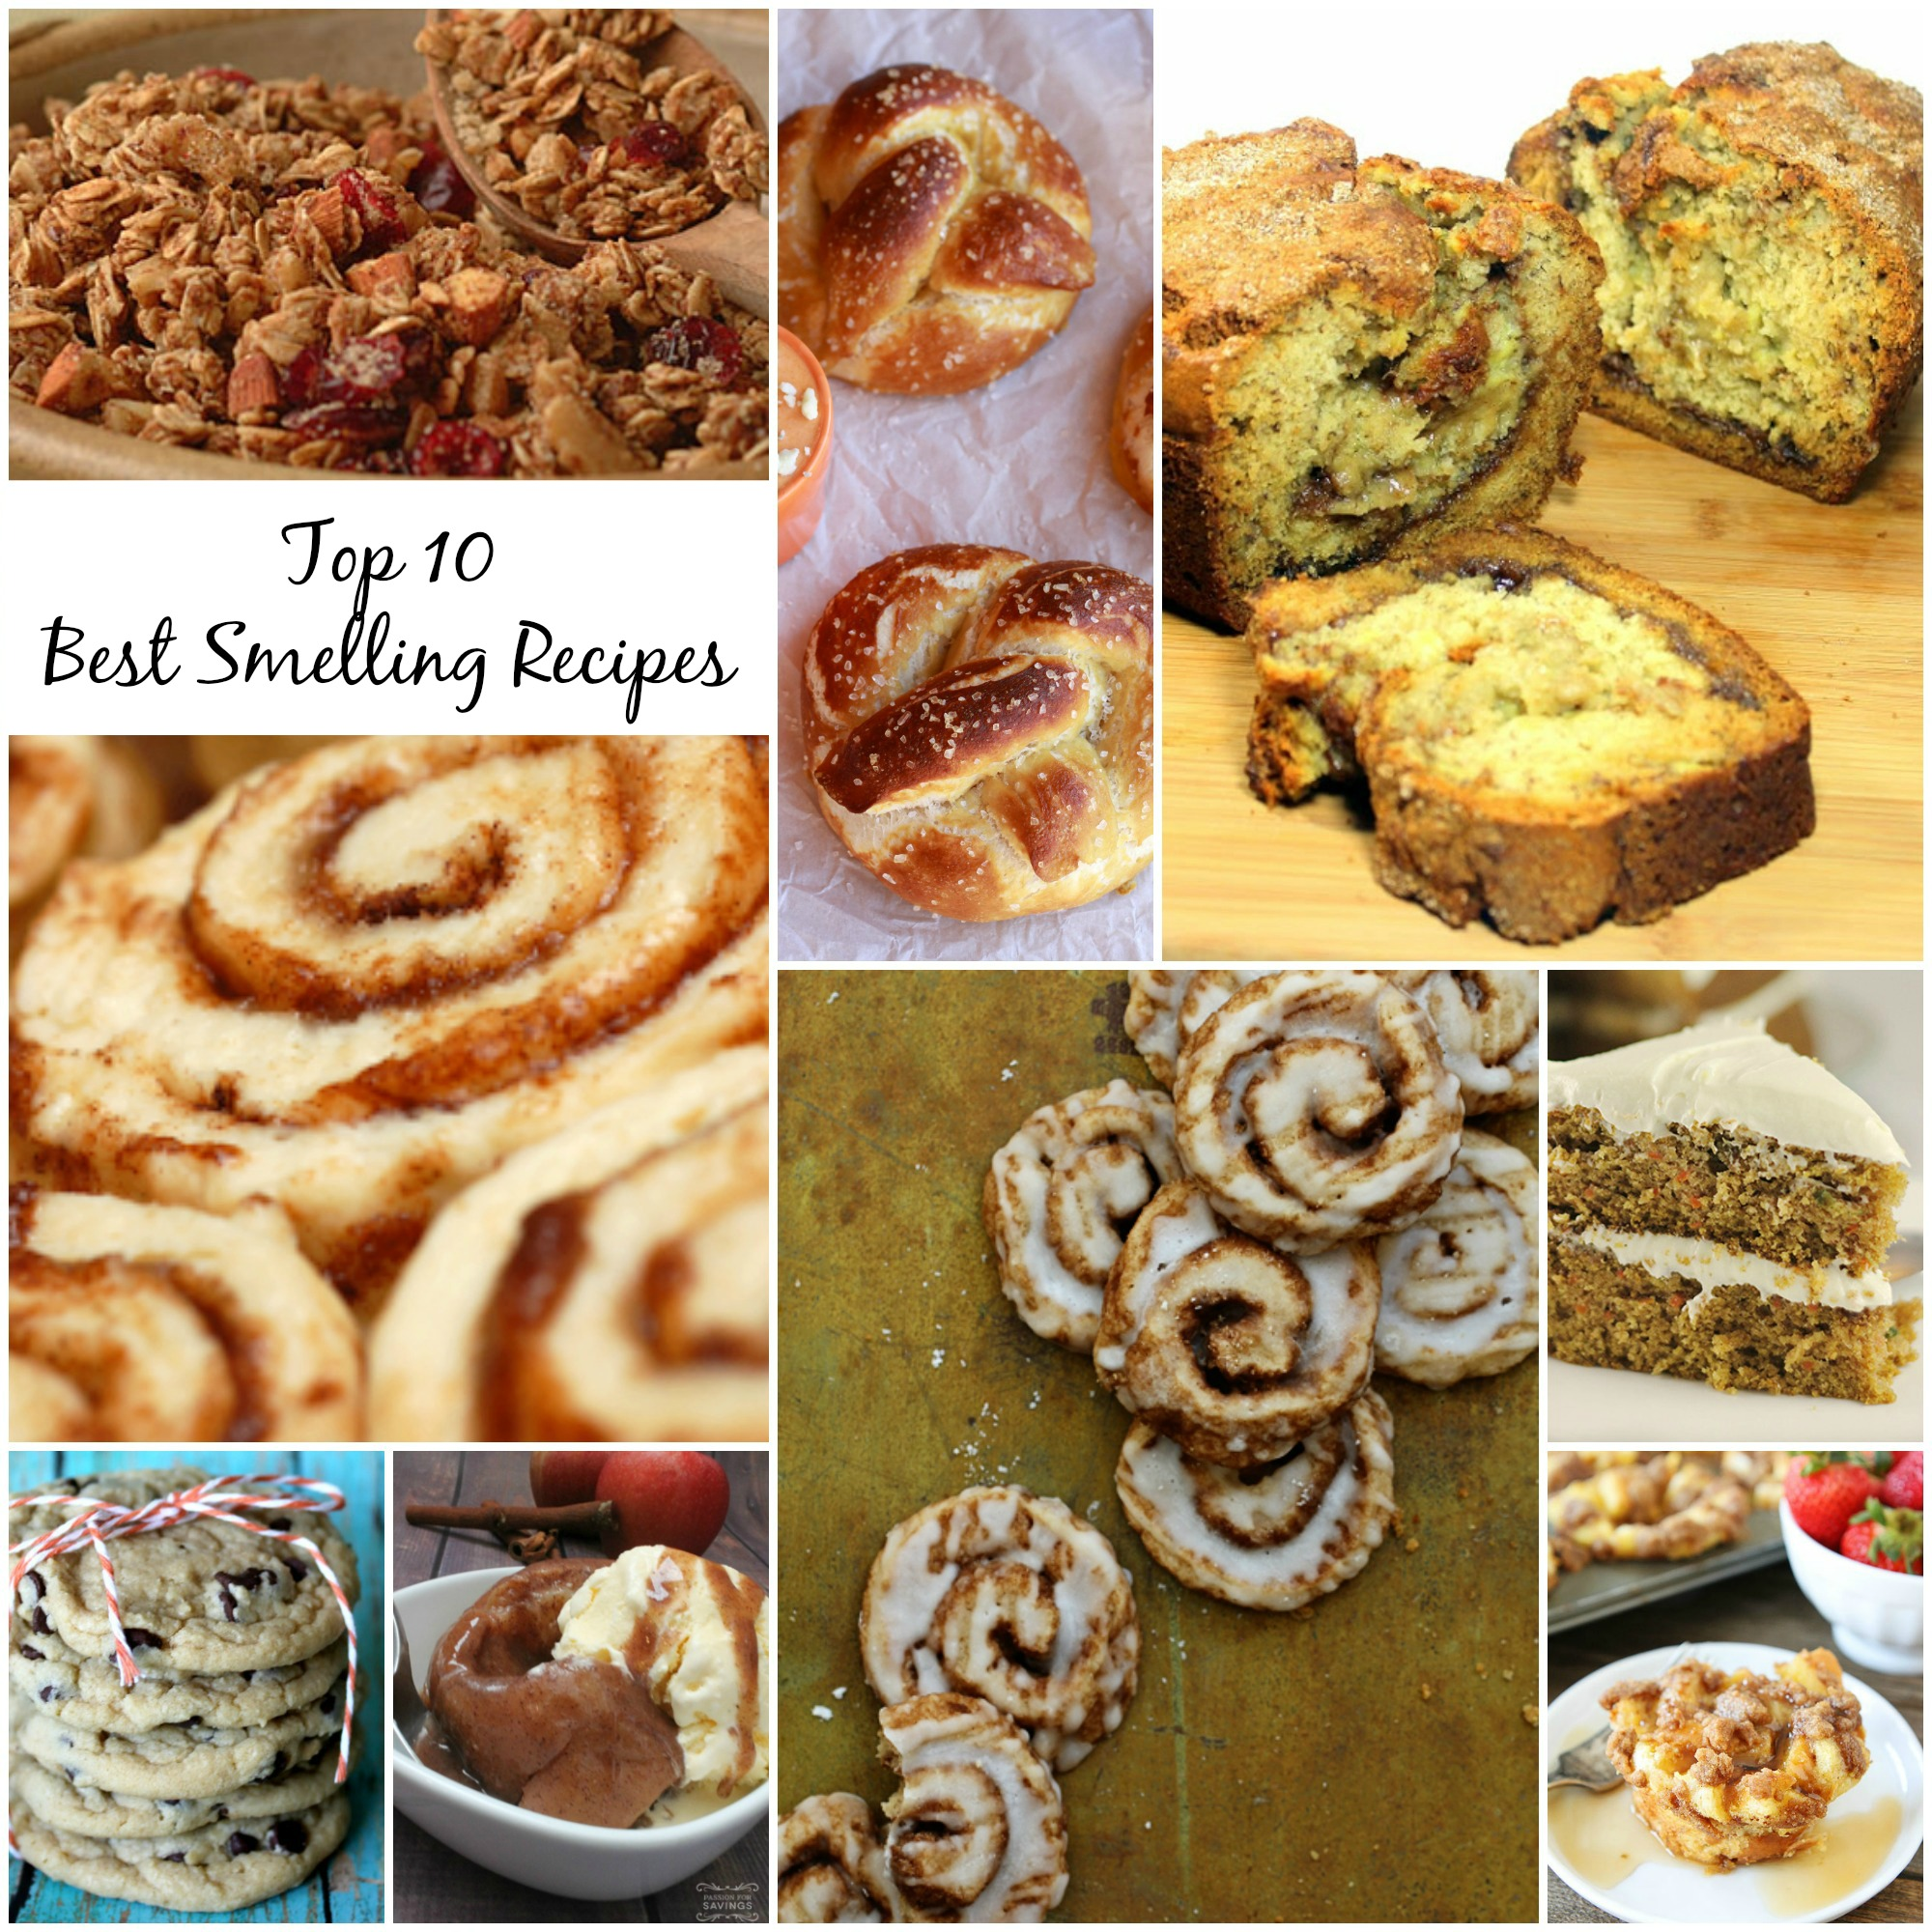 Top 10 Best Smelling Recipes